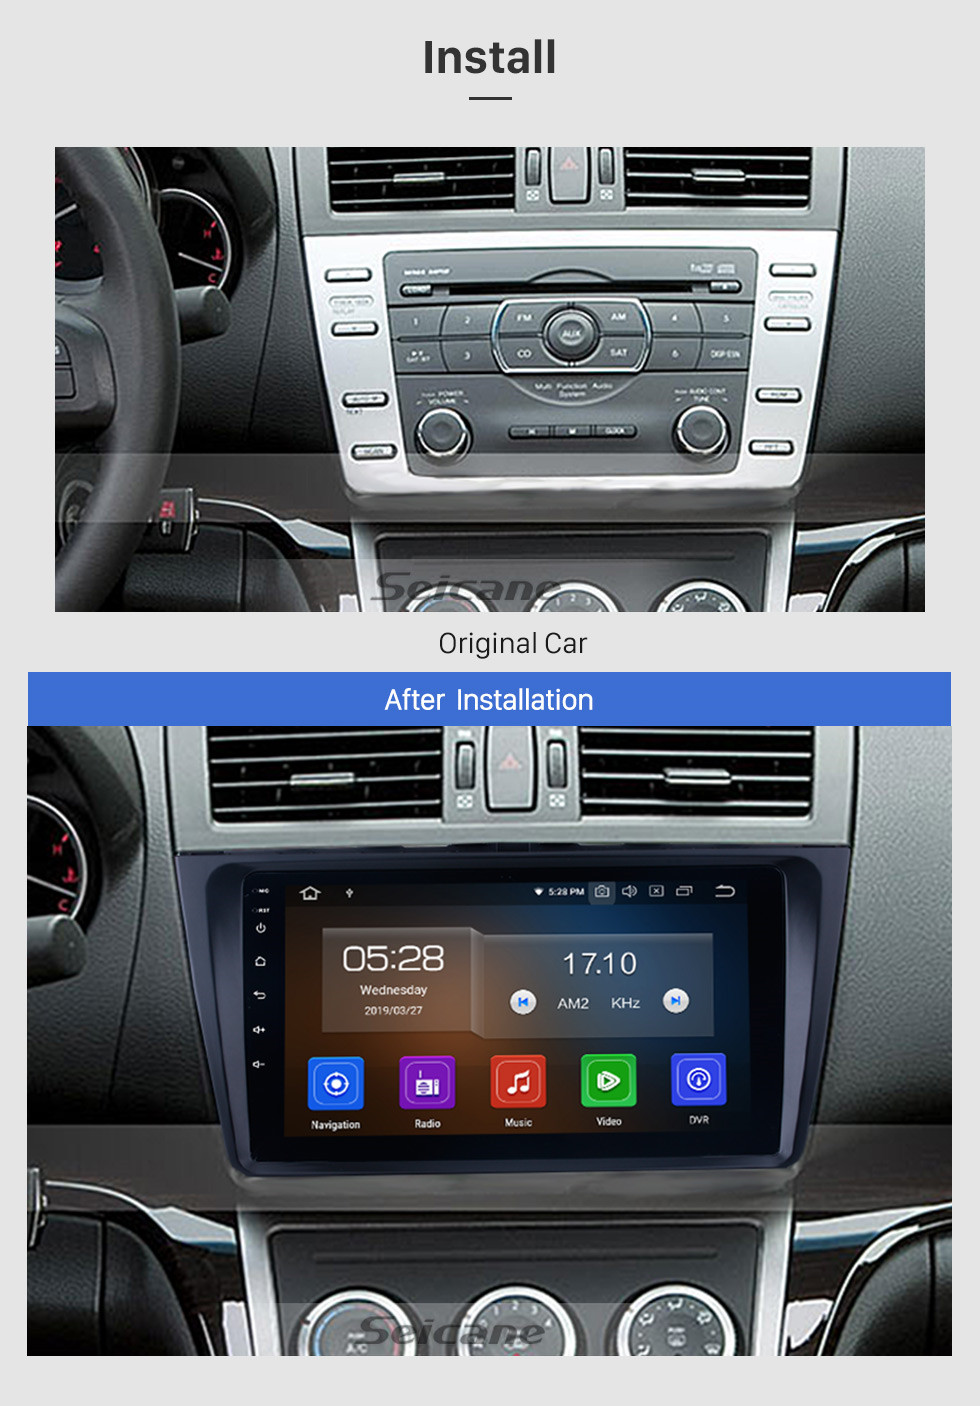 Seicane 9 inch Android 9.0 Radio GPS Navigation System Auto Stereo for 2008-2015 Mazda 6 Ruiyi with full 1024*600 Touchscreen Bluetooth Mirror link 3G WIFI support TPMS OBD2 DVR Rearview camera Steering Wheel Control